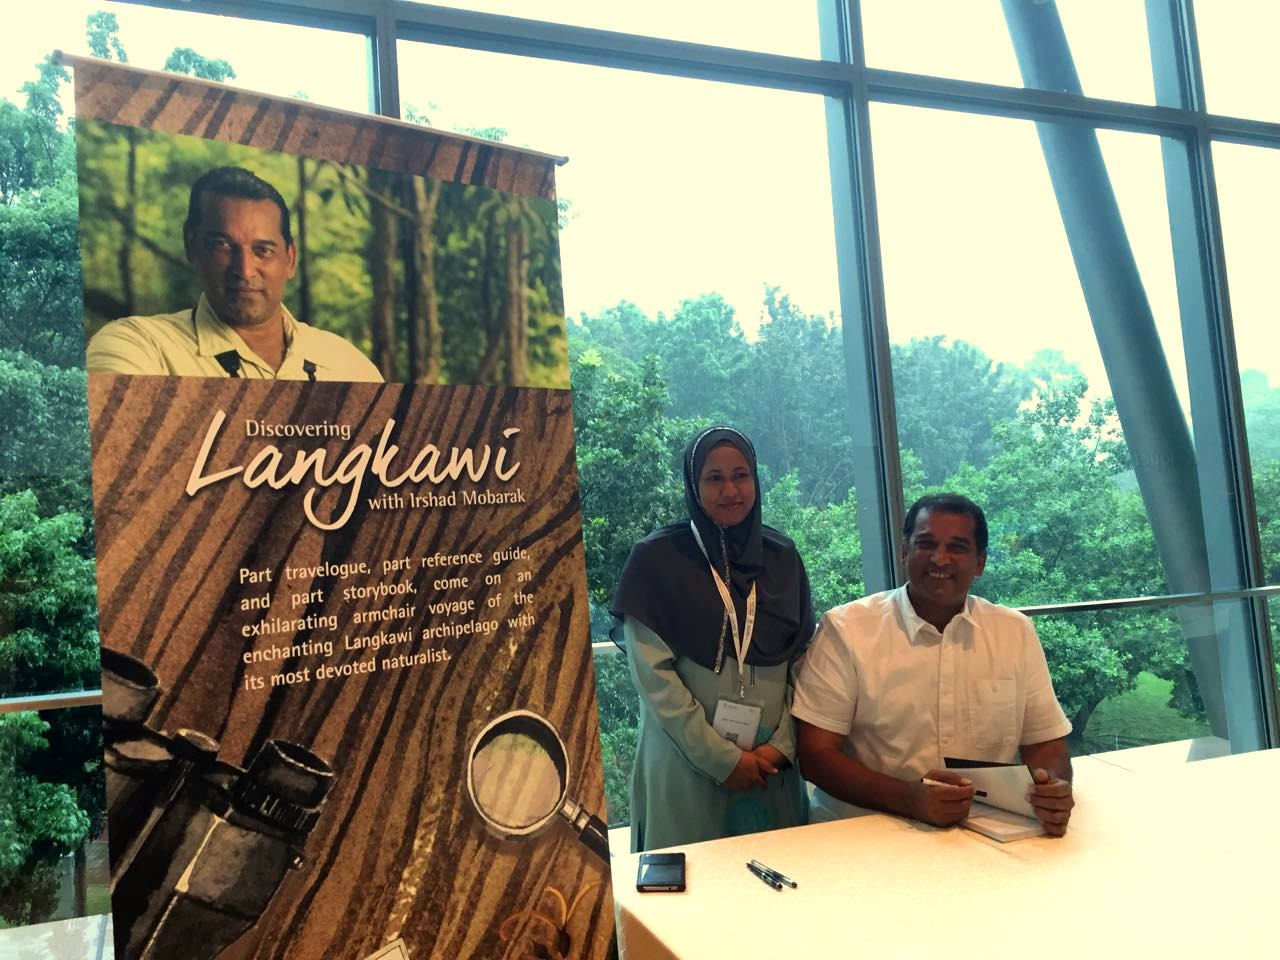 Discovering Langkawi with Irshad Mobarak: Launch!